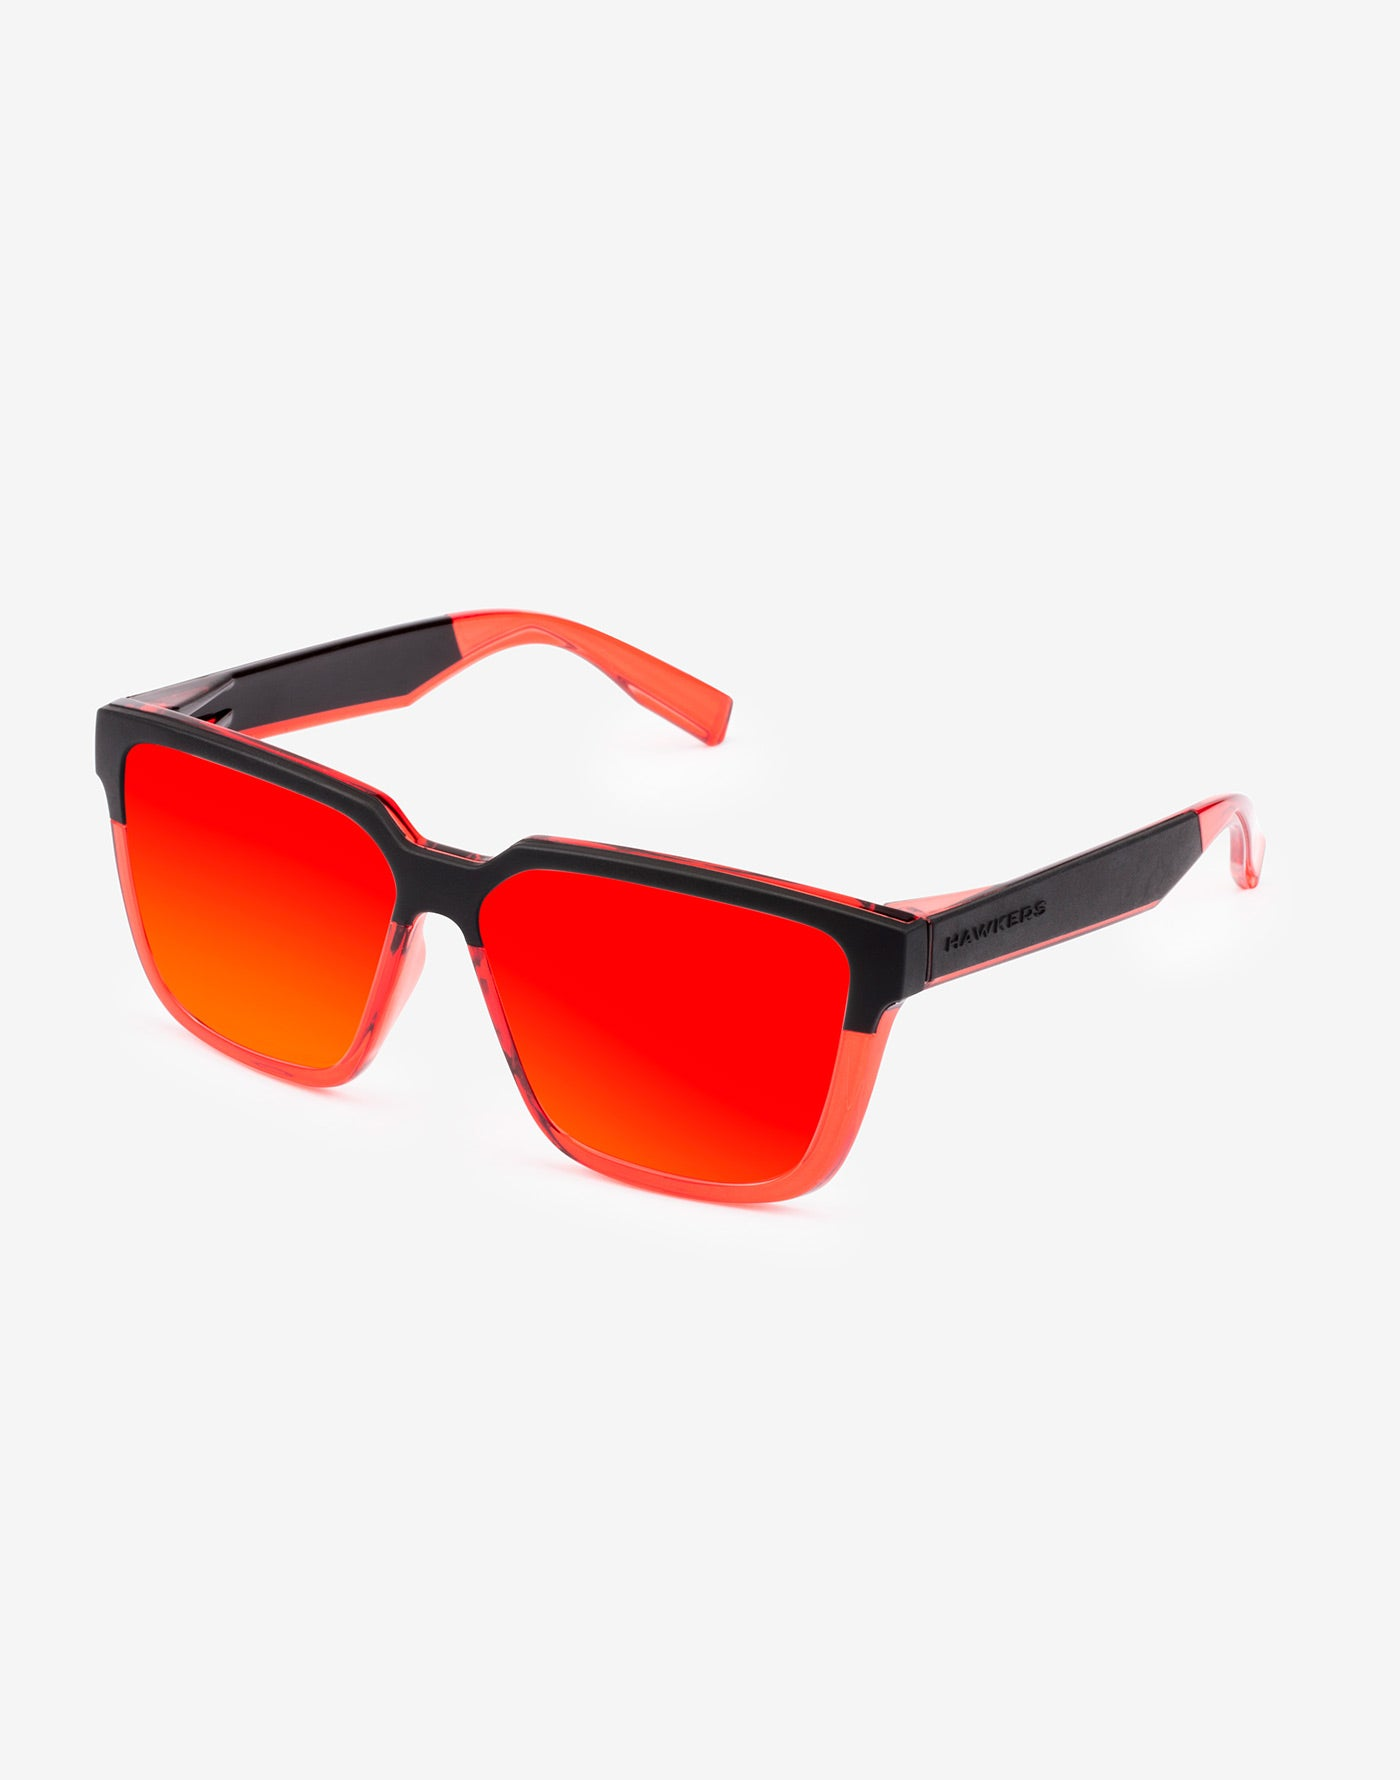 7e73857cacba5 Gafas de SolBlack Red Crystal Ruby Motion S Strong